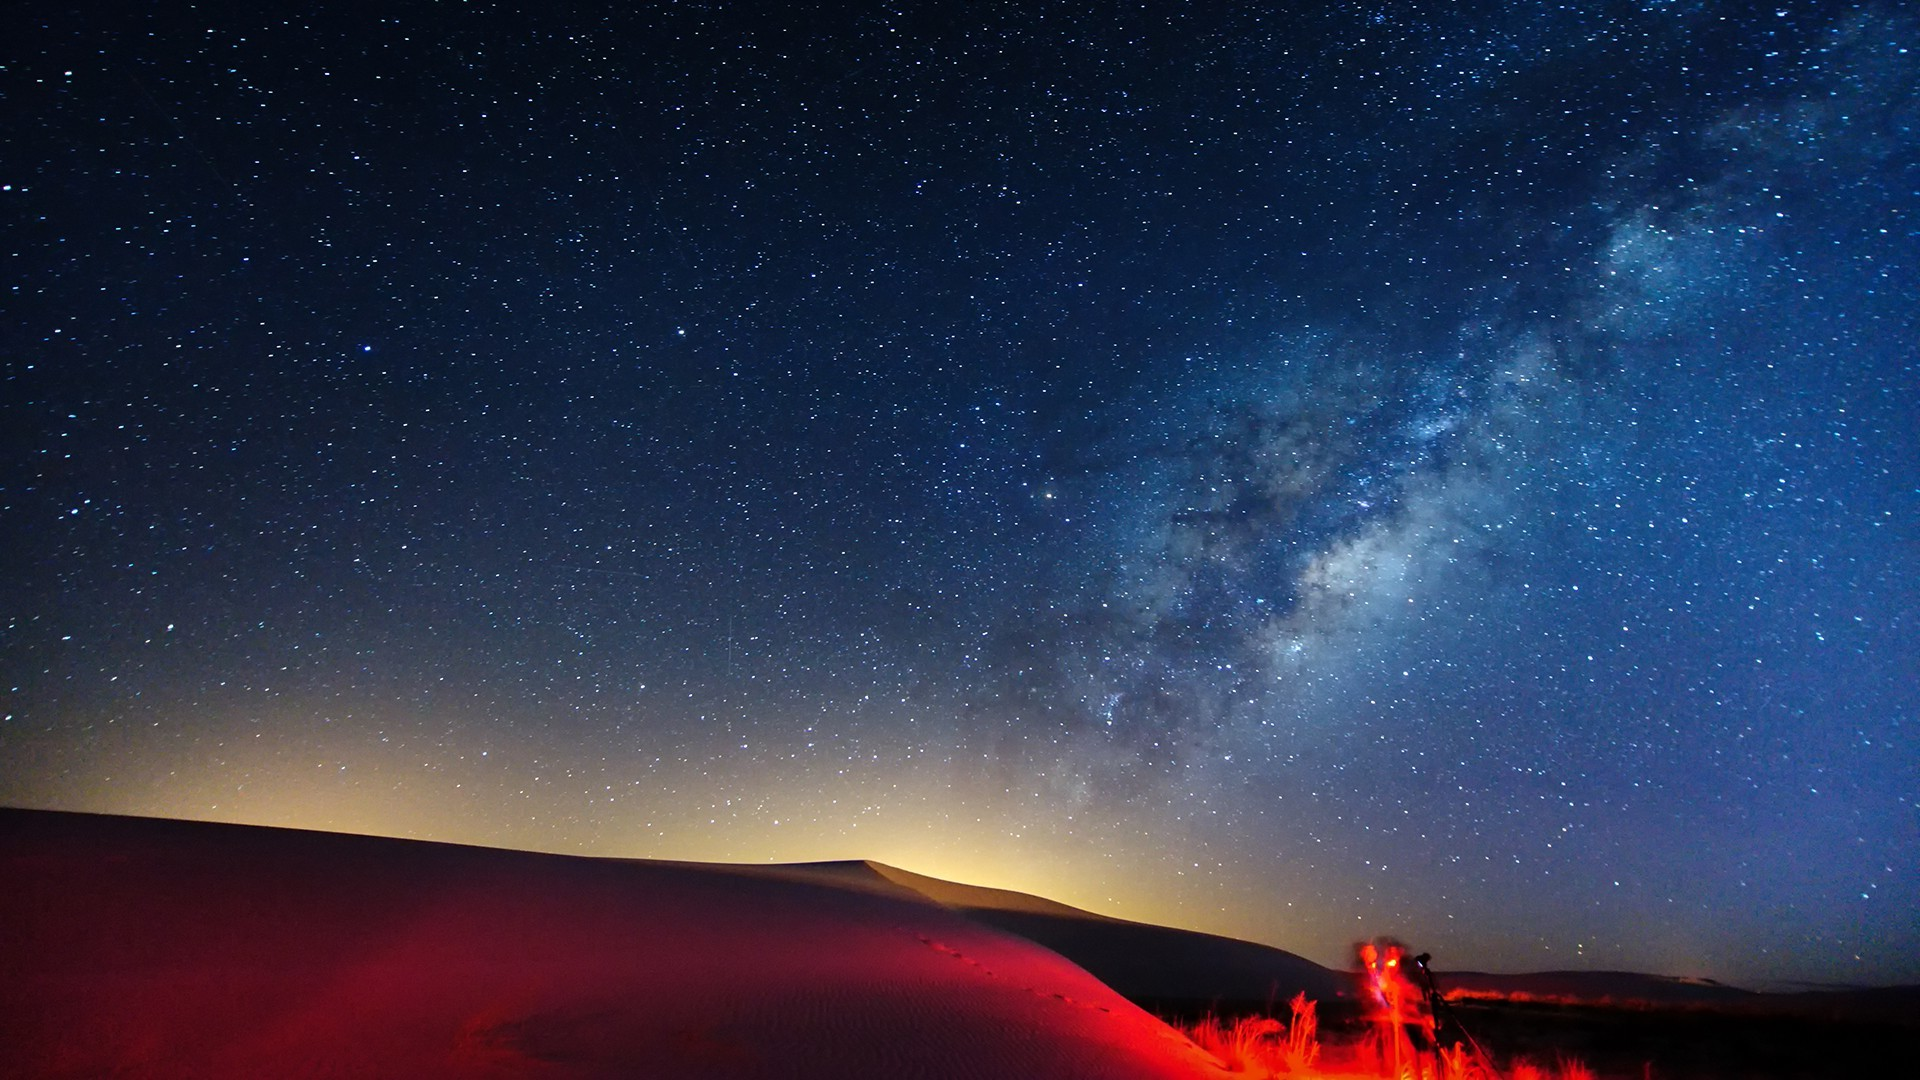 Amazing Milky Way Wallpapers: HD Milky Way Wallpapers (64+ Images